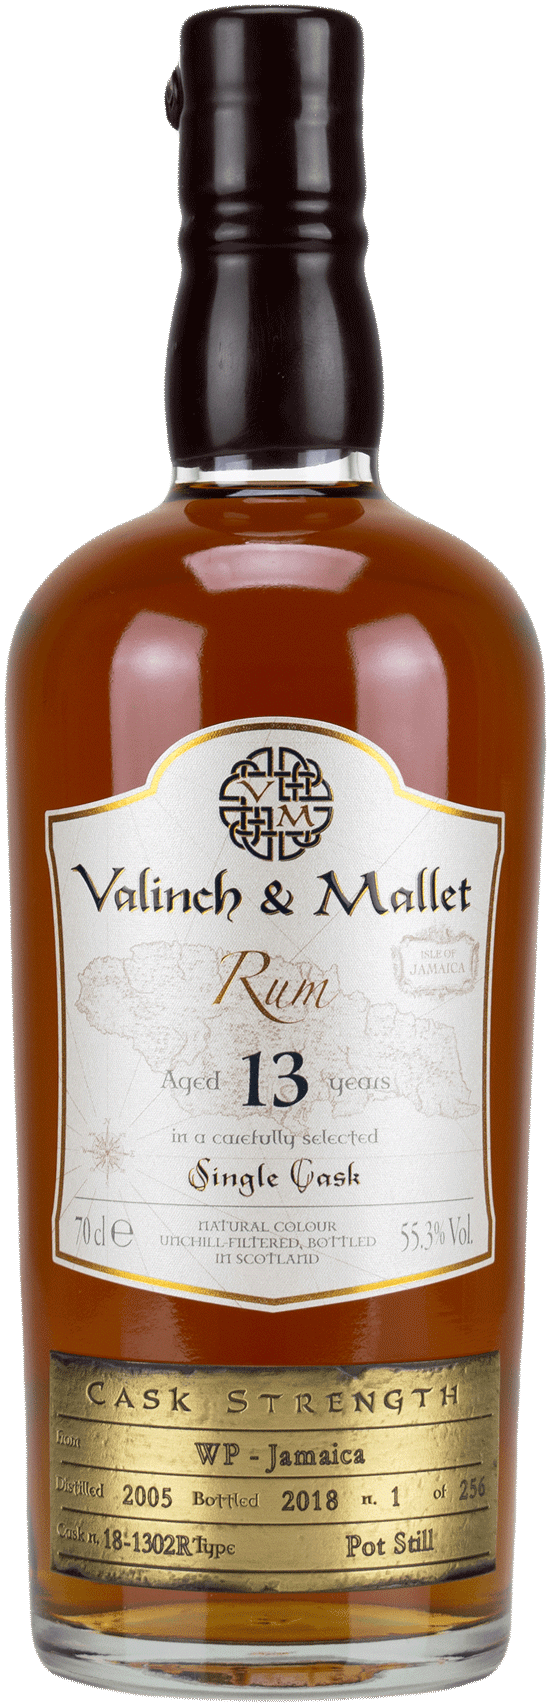 Jamaica WP 13 Valinch & Mallet Pure Single Rum